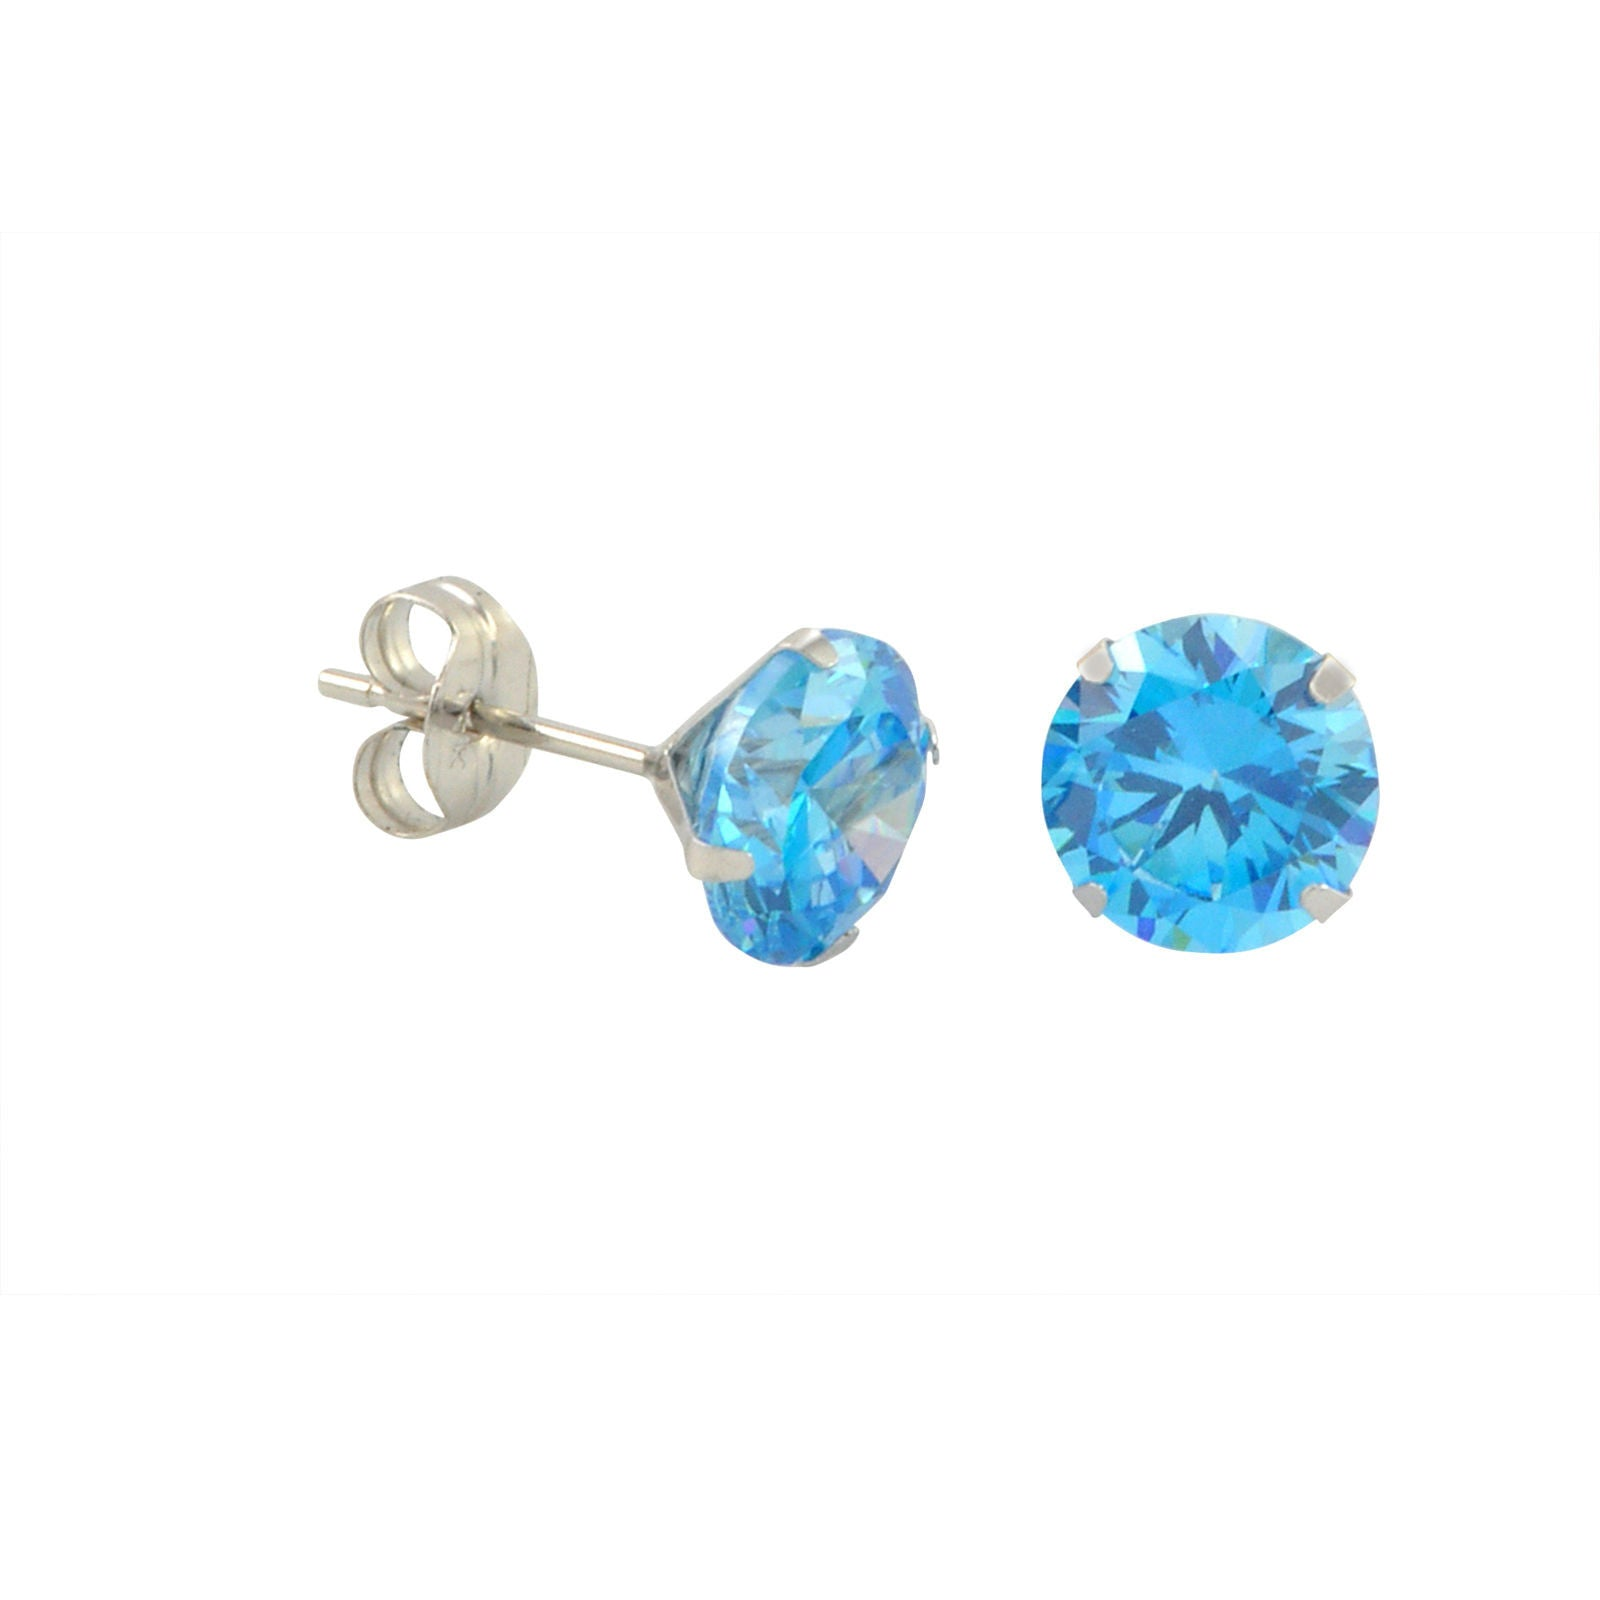 dylani stud s maine earrings hampshire new topaz jewelers jewelry springer stores index blue